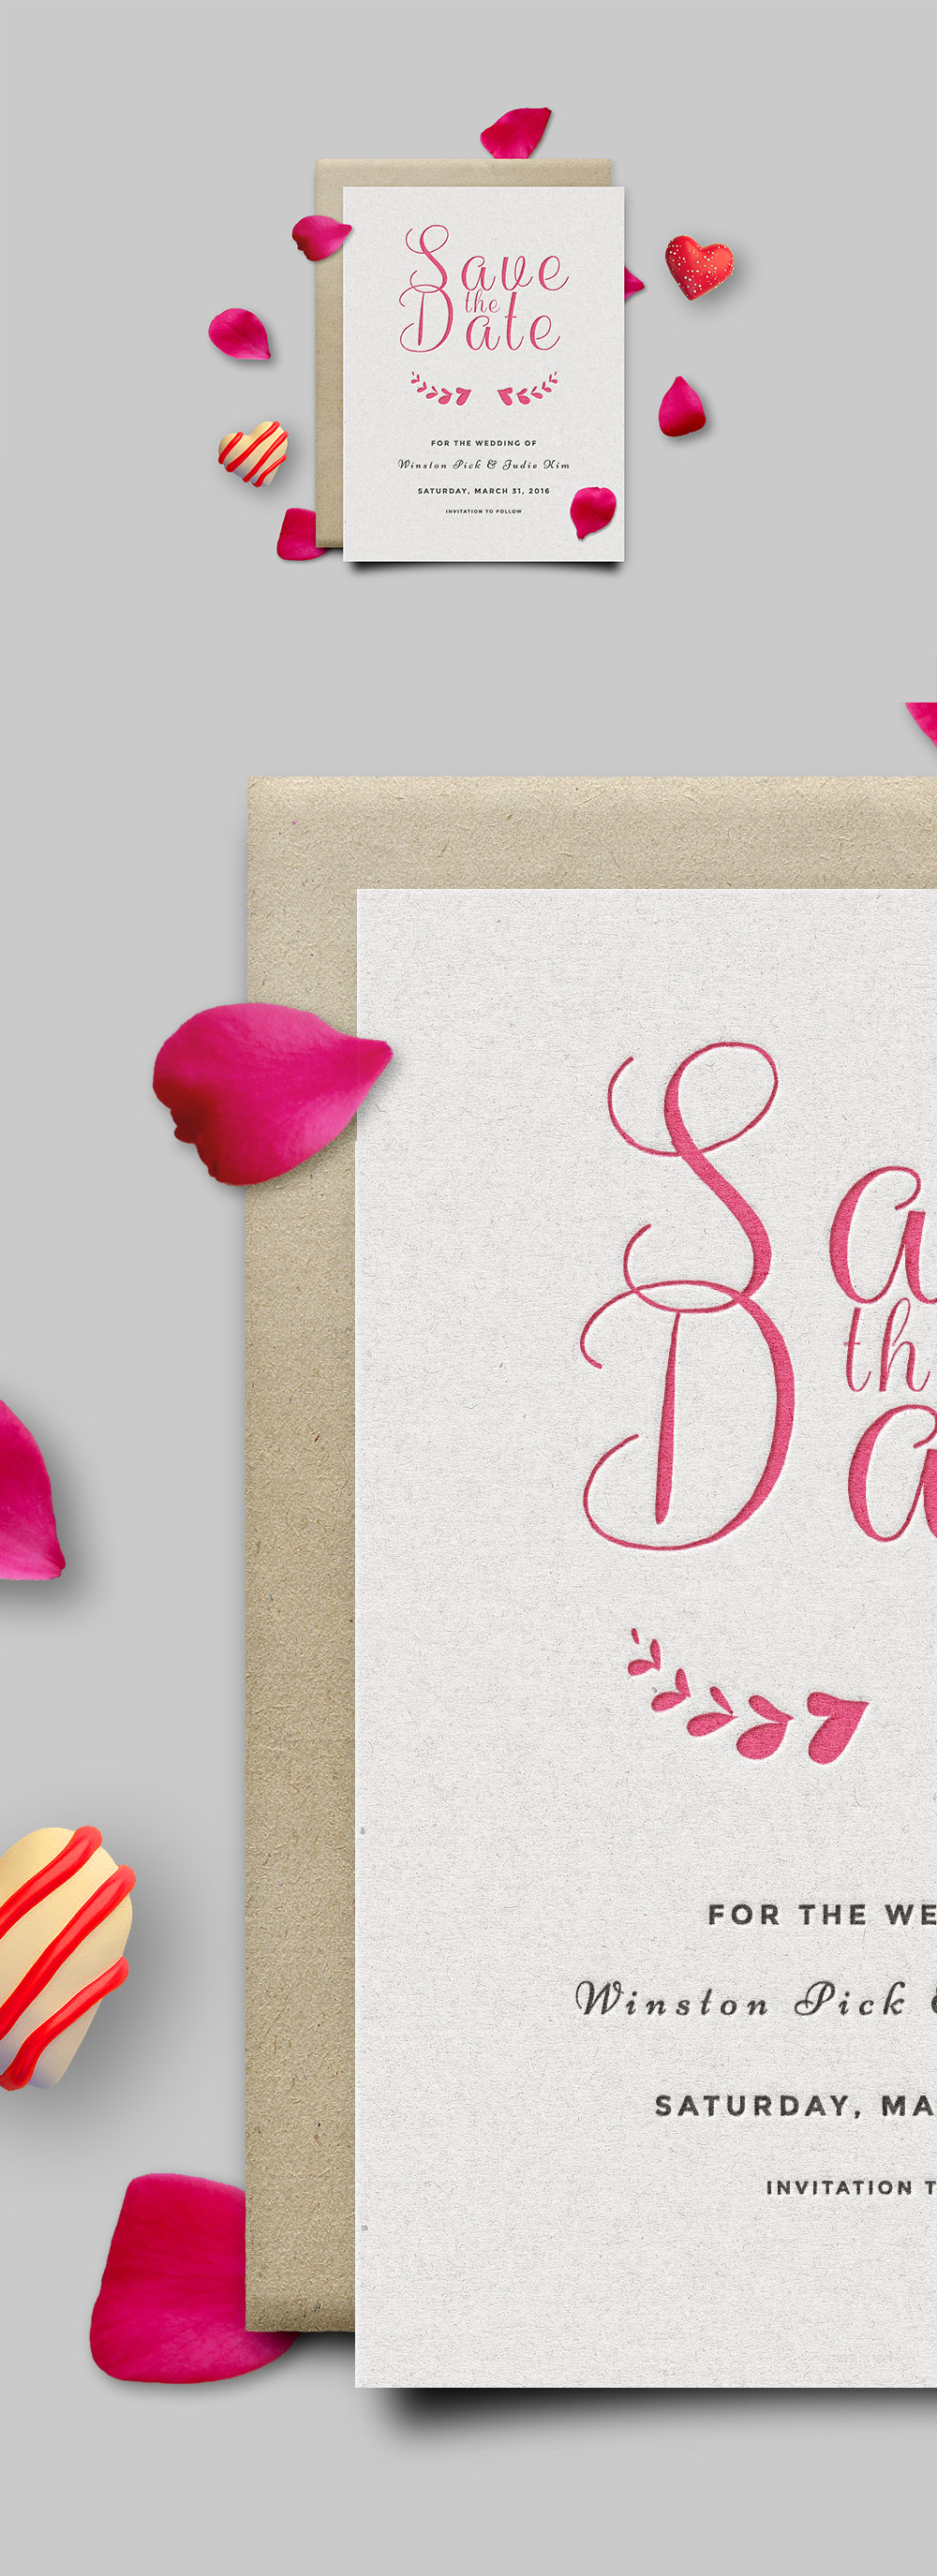 Lovely Date Invitation Card